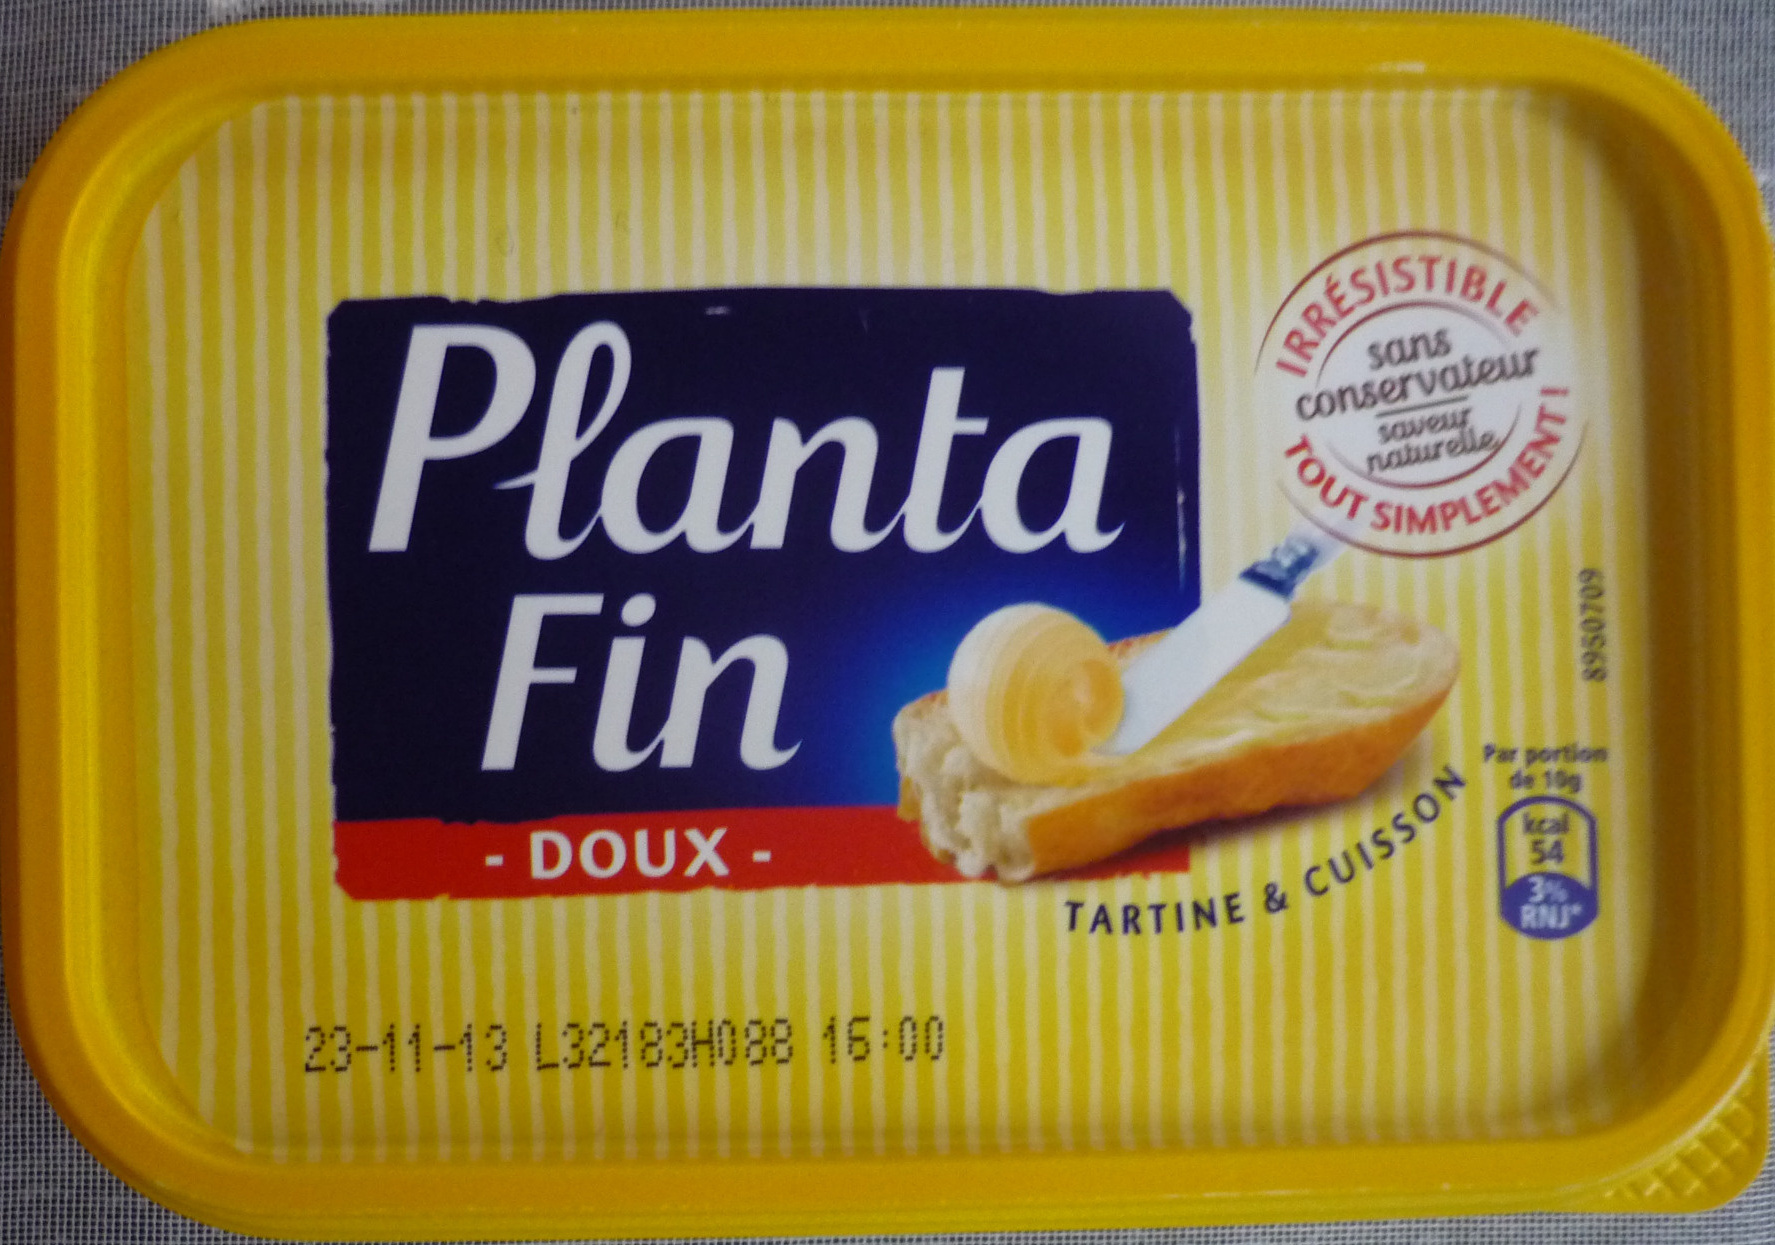 Planta Fin Doux Tartine & cuisson (60 % MG) - Product - fr